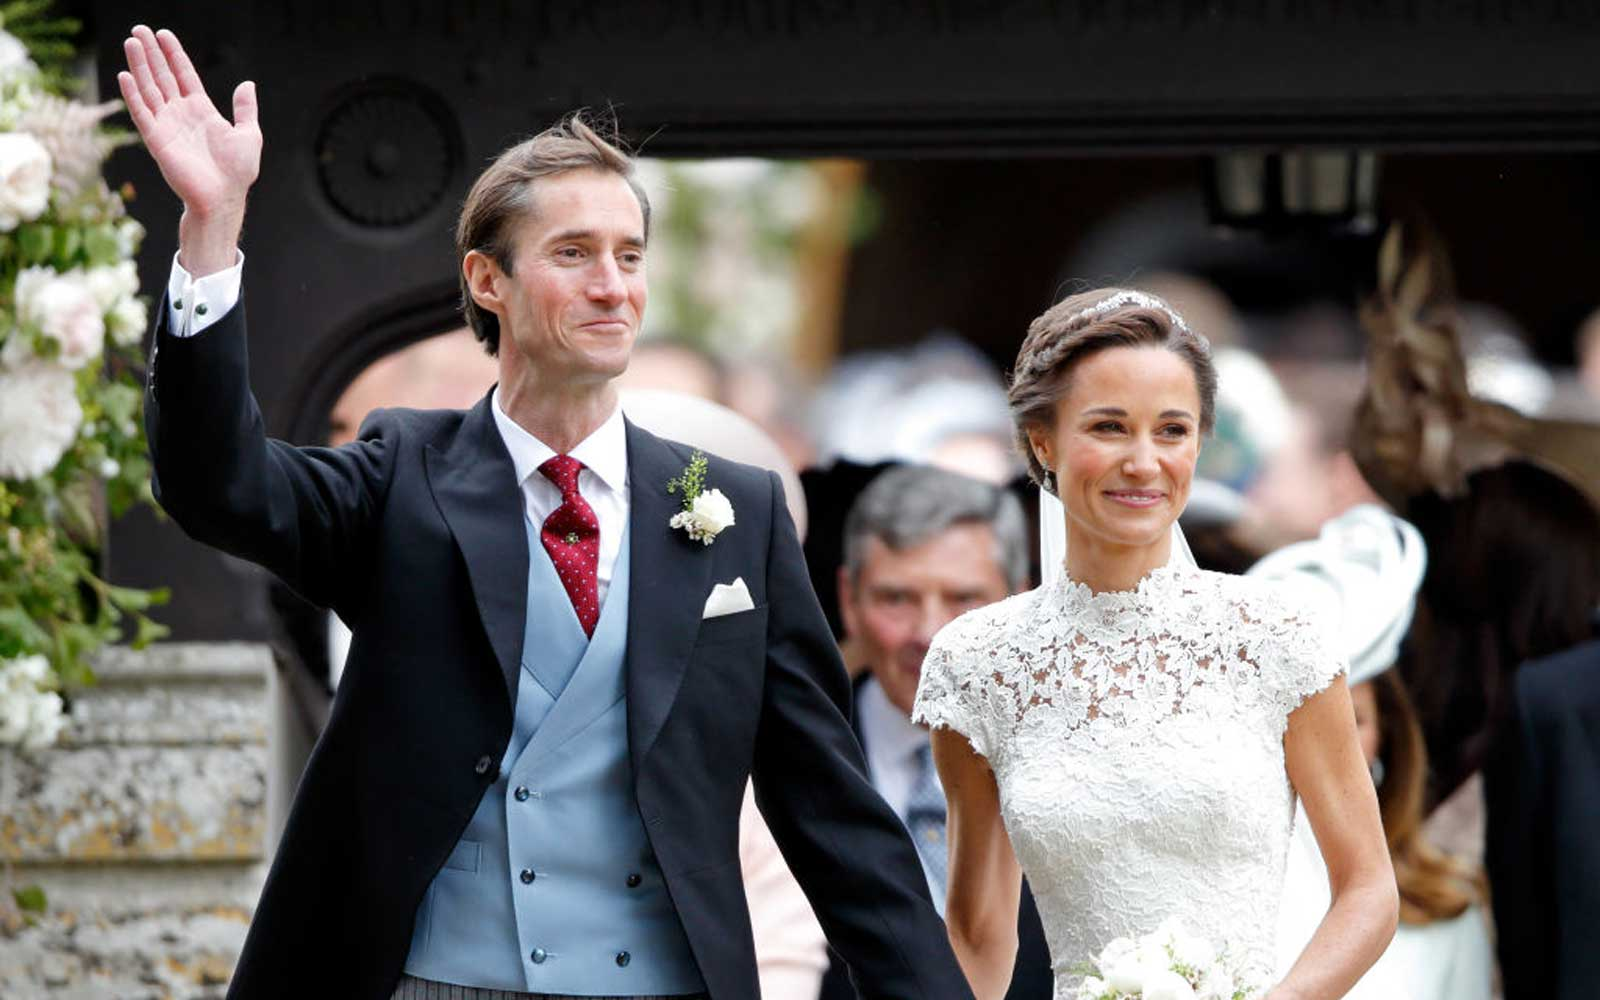 See Pippa Middleton's stunning wedding gown